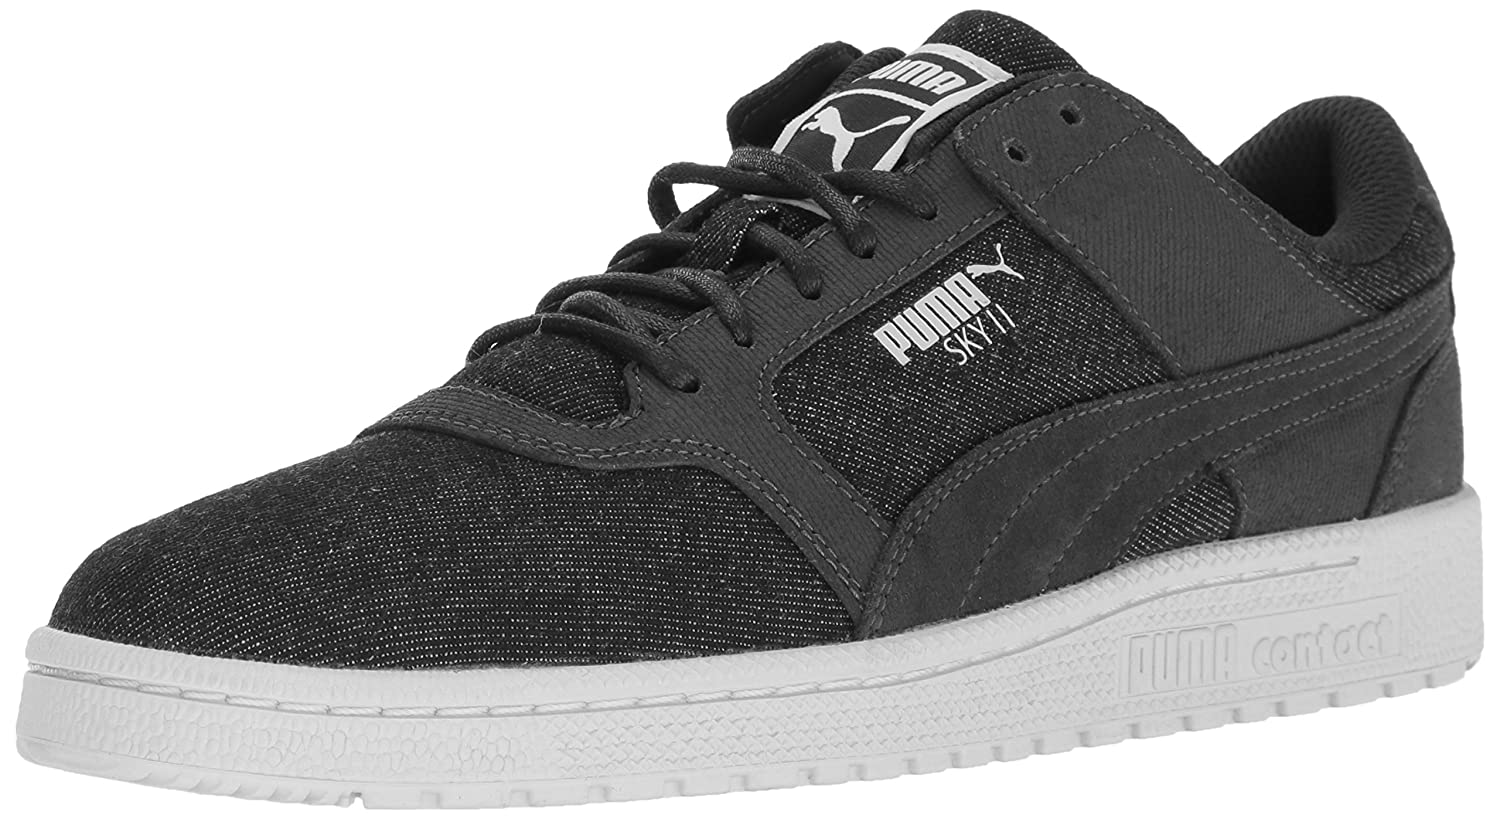 Puma Men's Sky II Lo Denim Fashion Turnschuhe, Twilight Blau, 4.5 M US